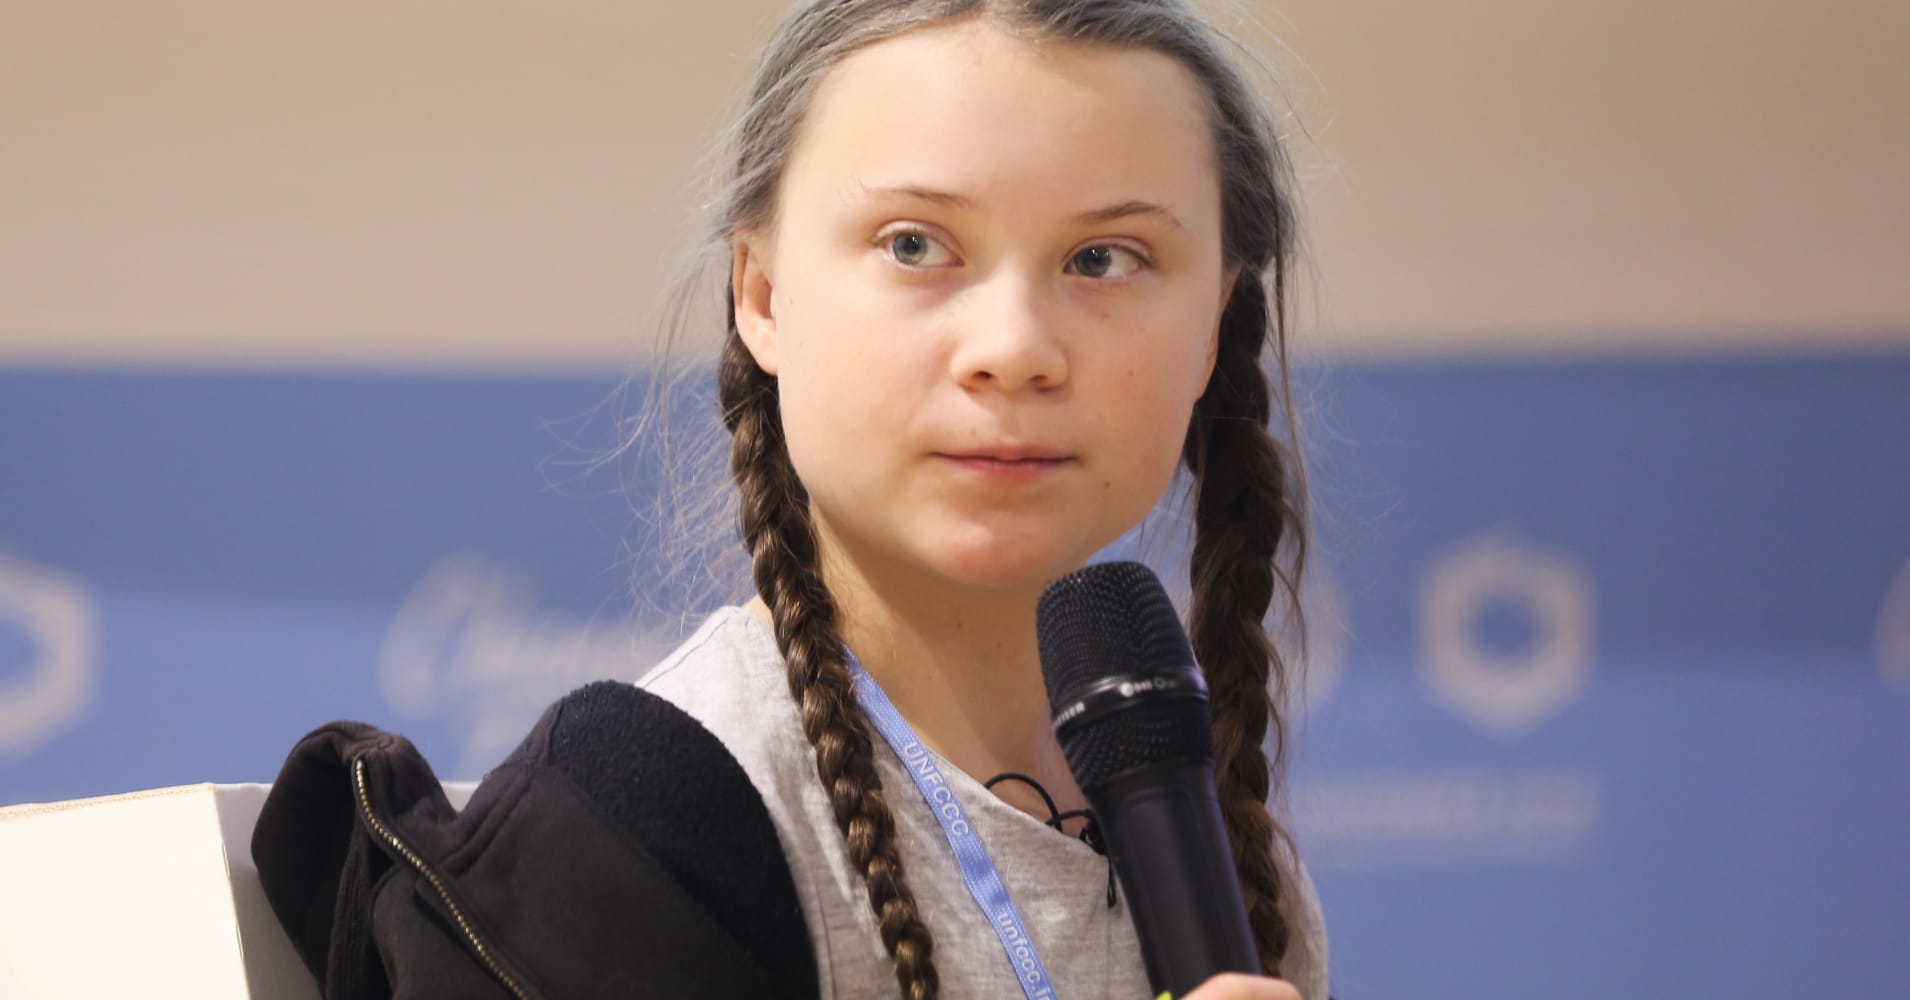 greta thunberg - photo #21